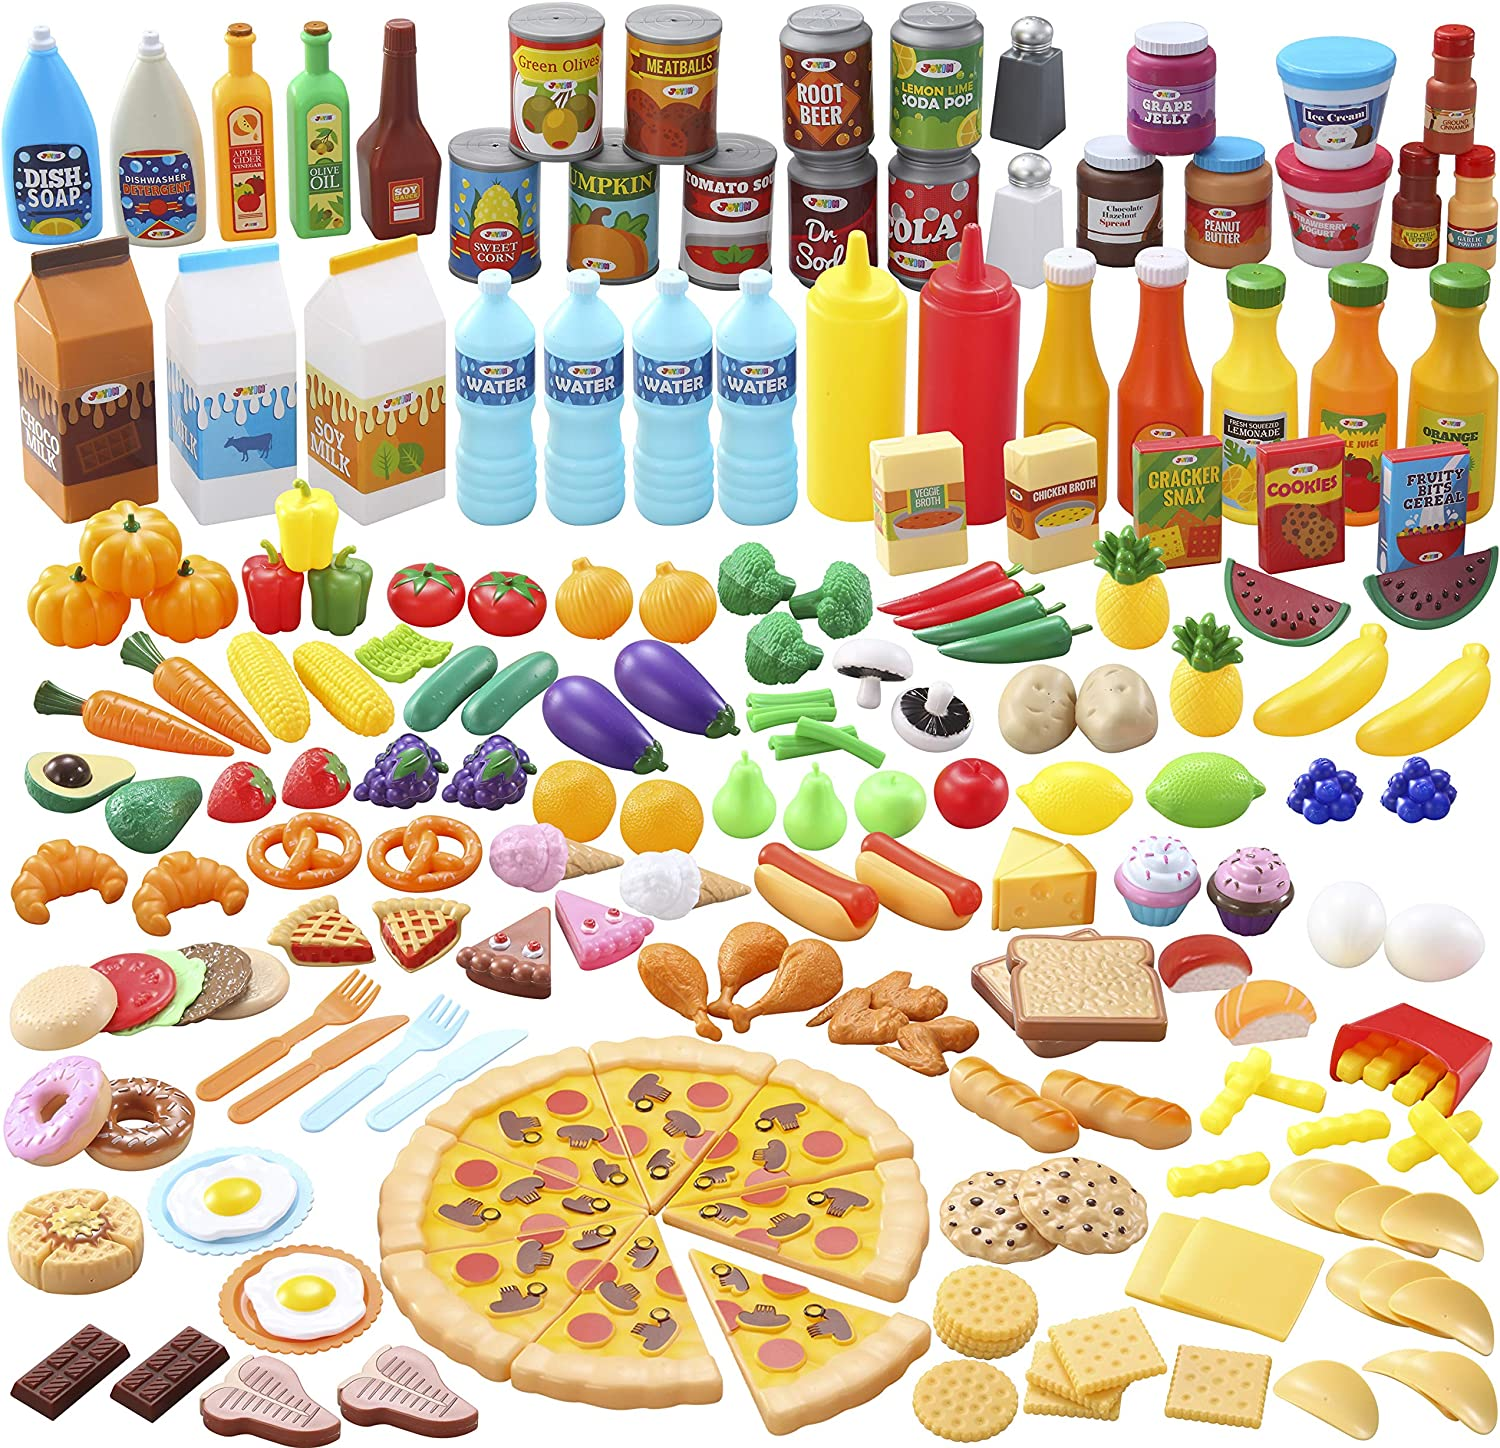 JOYIN Play Food Set 200 PCS Pretend Play Food with Dishes, Knife and Fork for Toddler Boys and Girls Toys